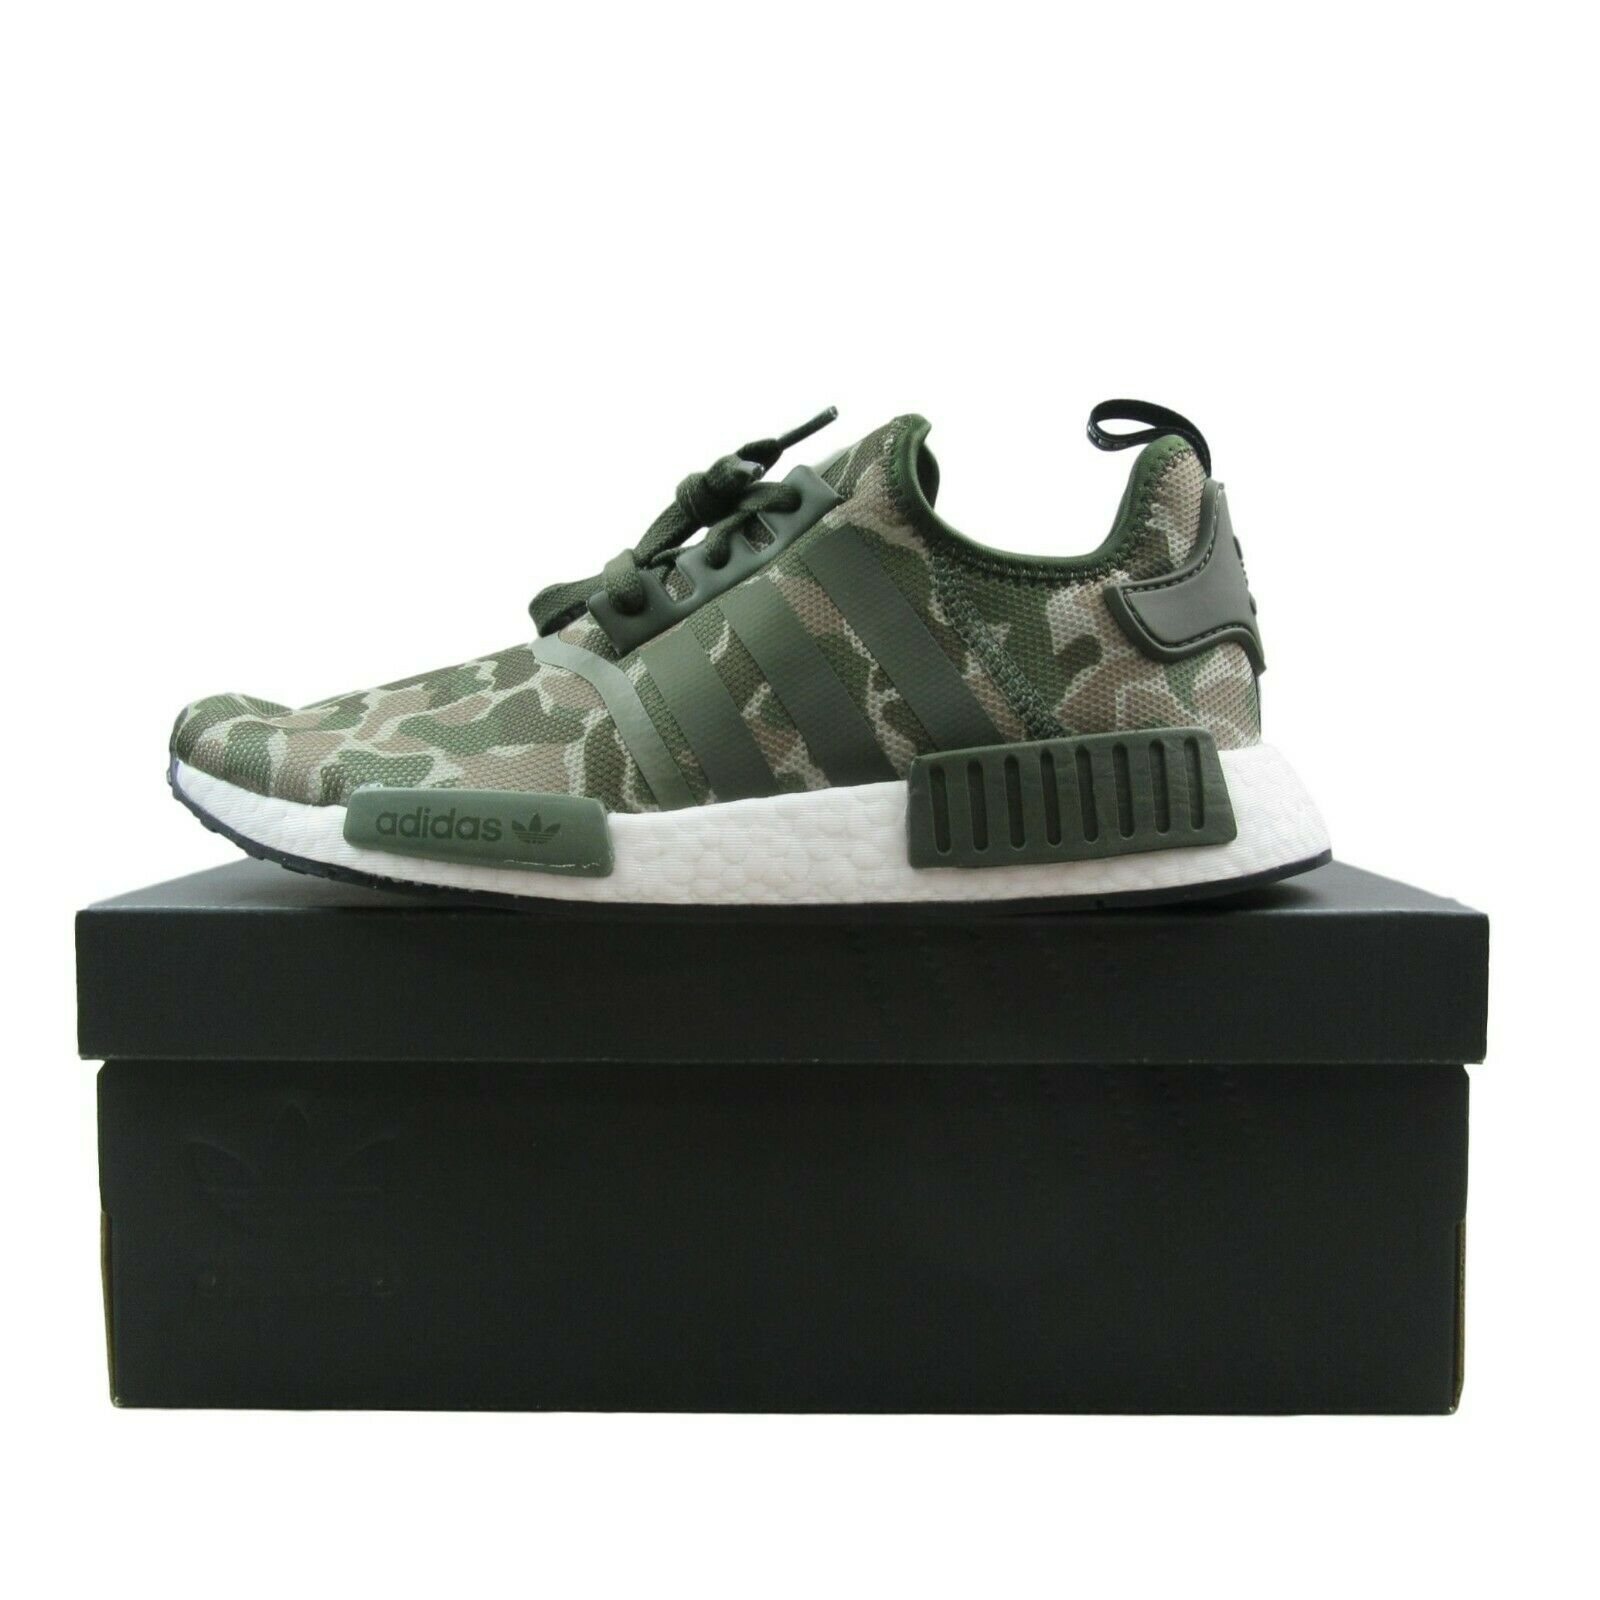 9af18886c Adidas NMD R1 Duck Camo Running Shoes Size 9.5 Sesame Base Green D96617